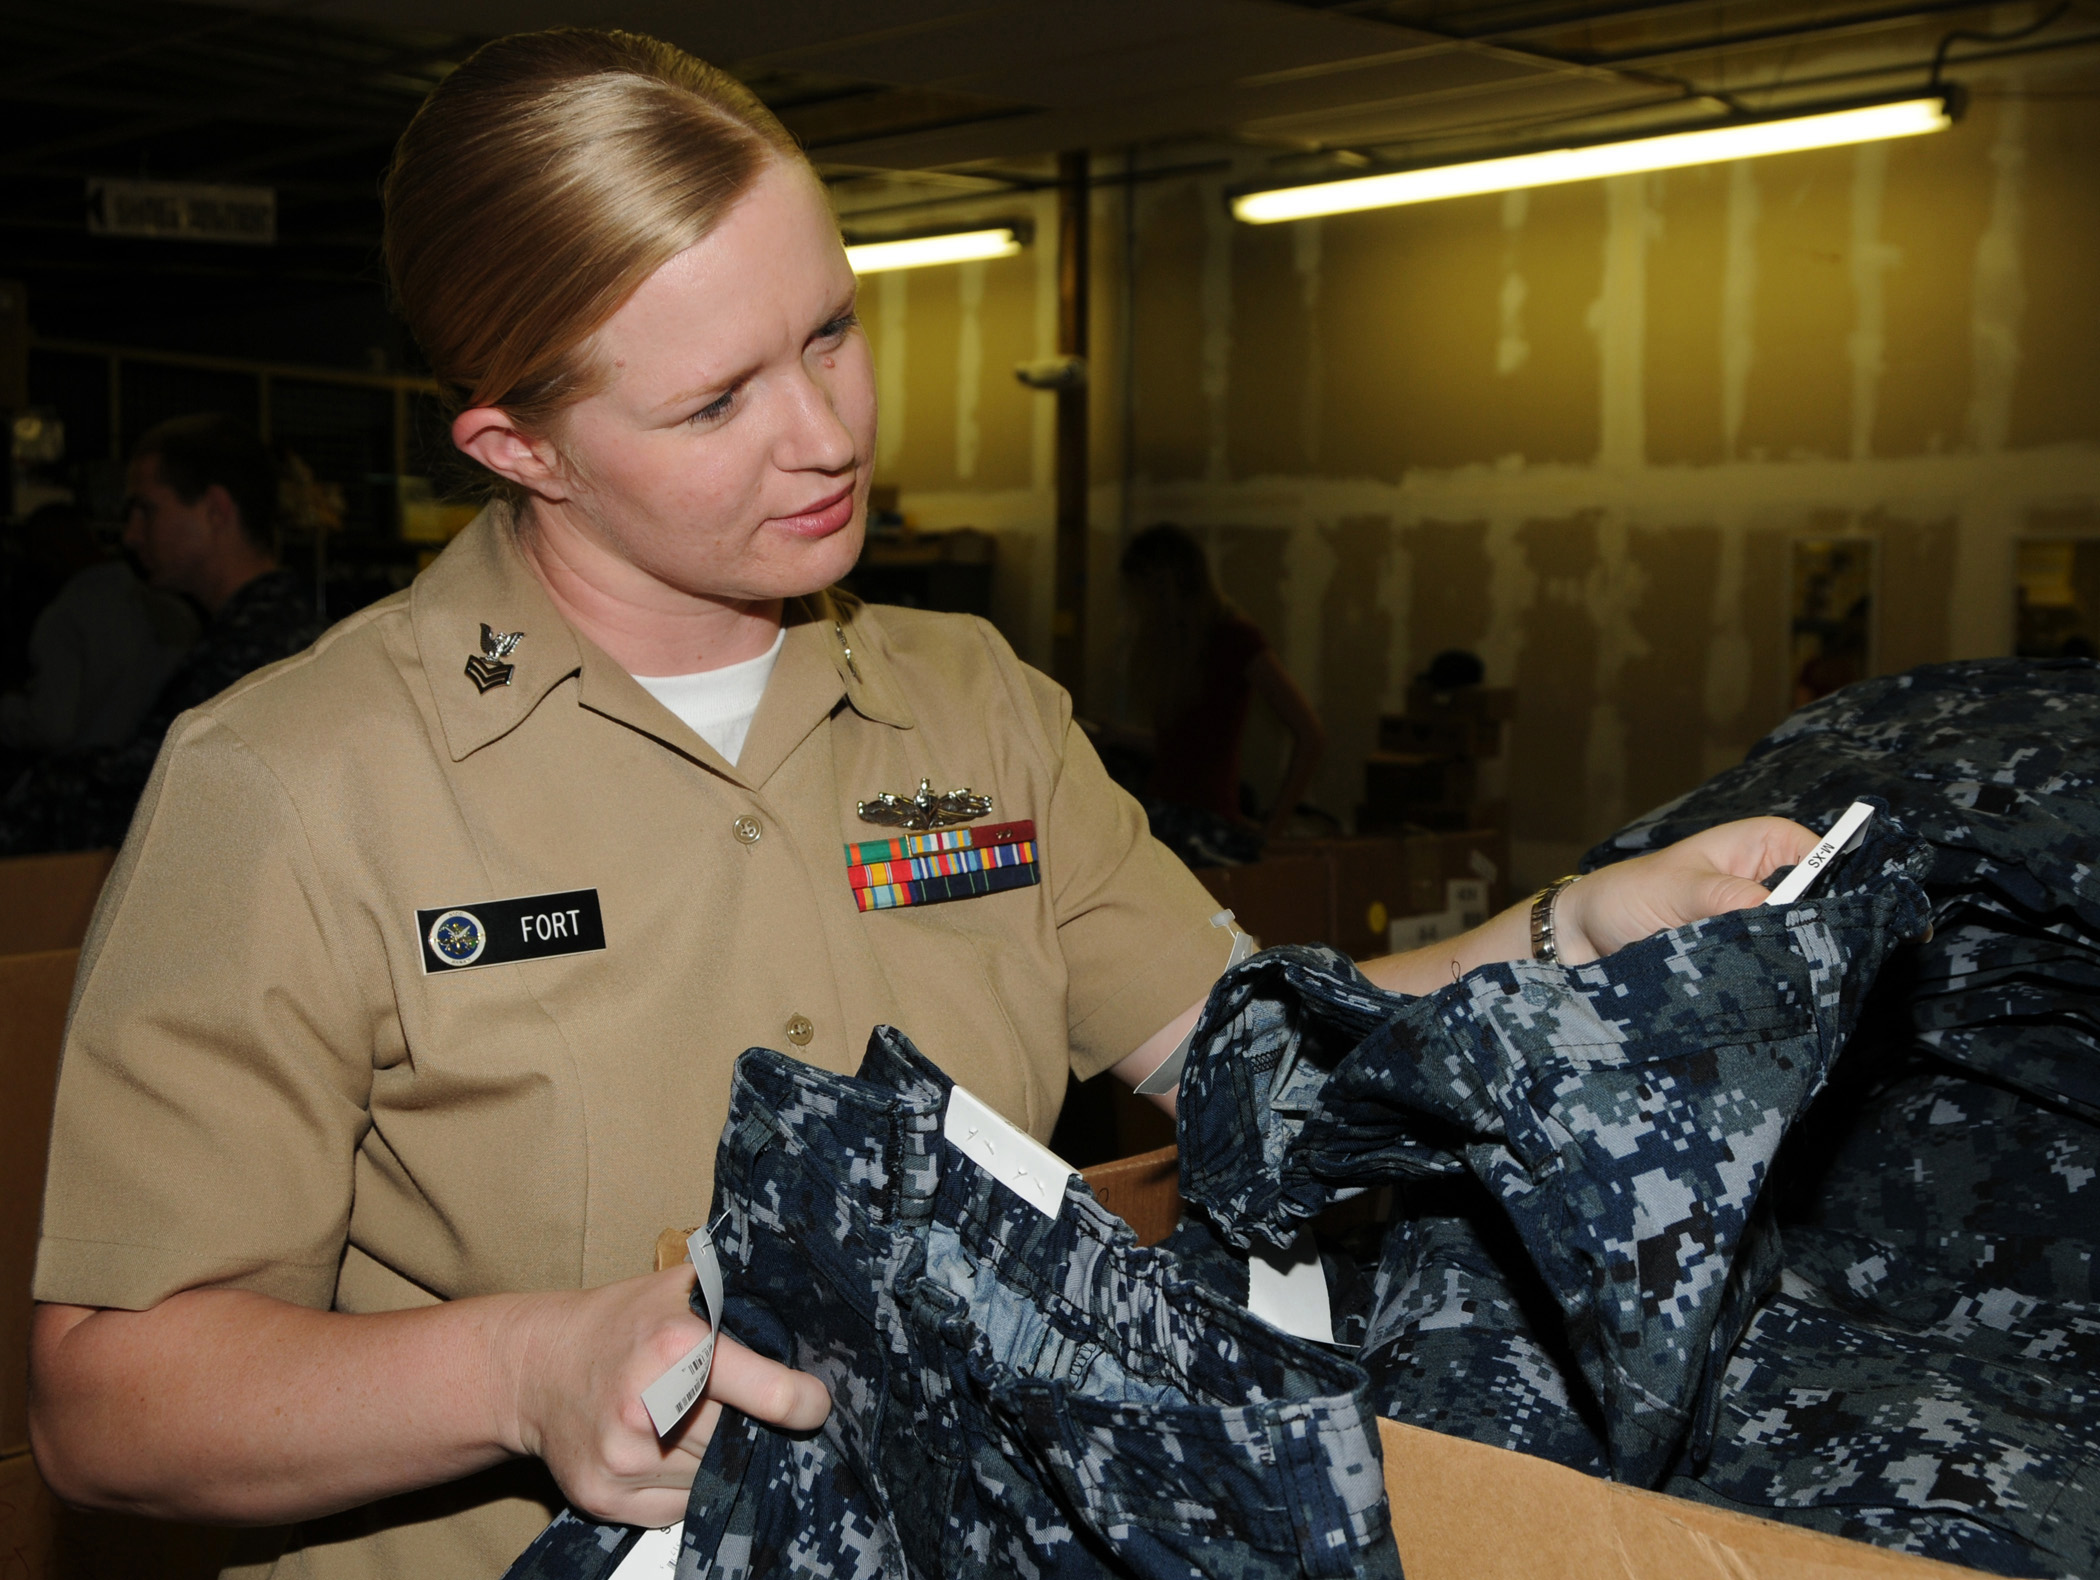 Cryptologic Technician (Collection) 1st Class Wendy Fort looks through the different components of the Navy Working Uniform (NWU) at the Naval Station Pearl Harbor Uniform Center in 2009. US Navy Photo